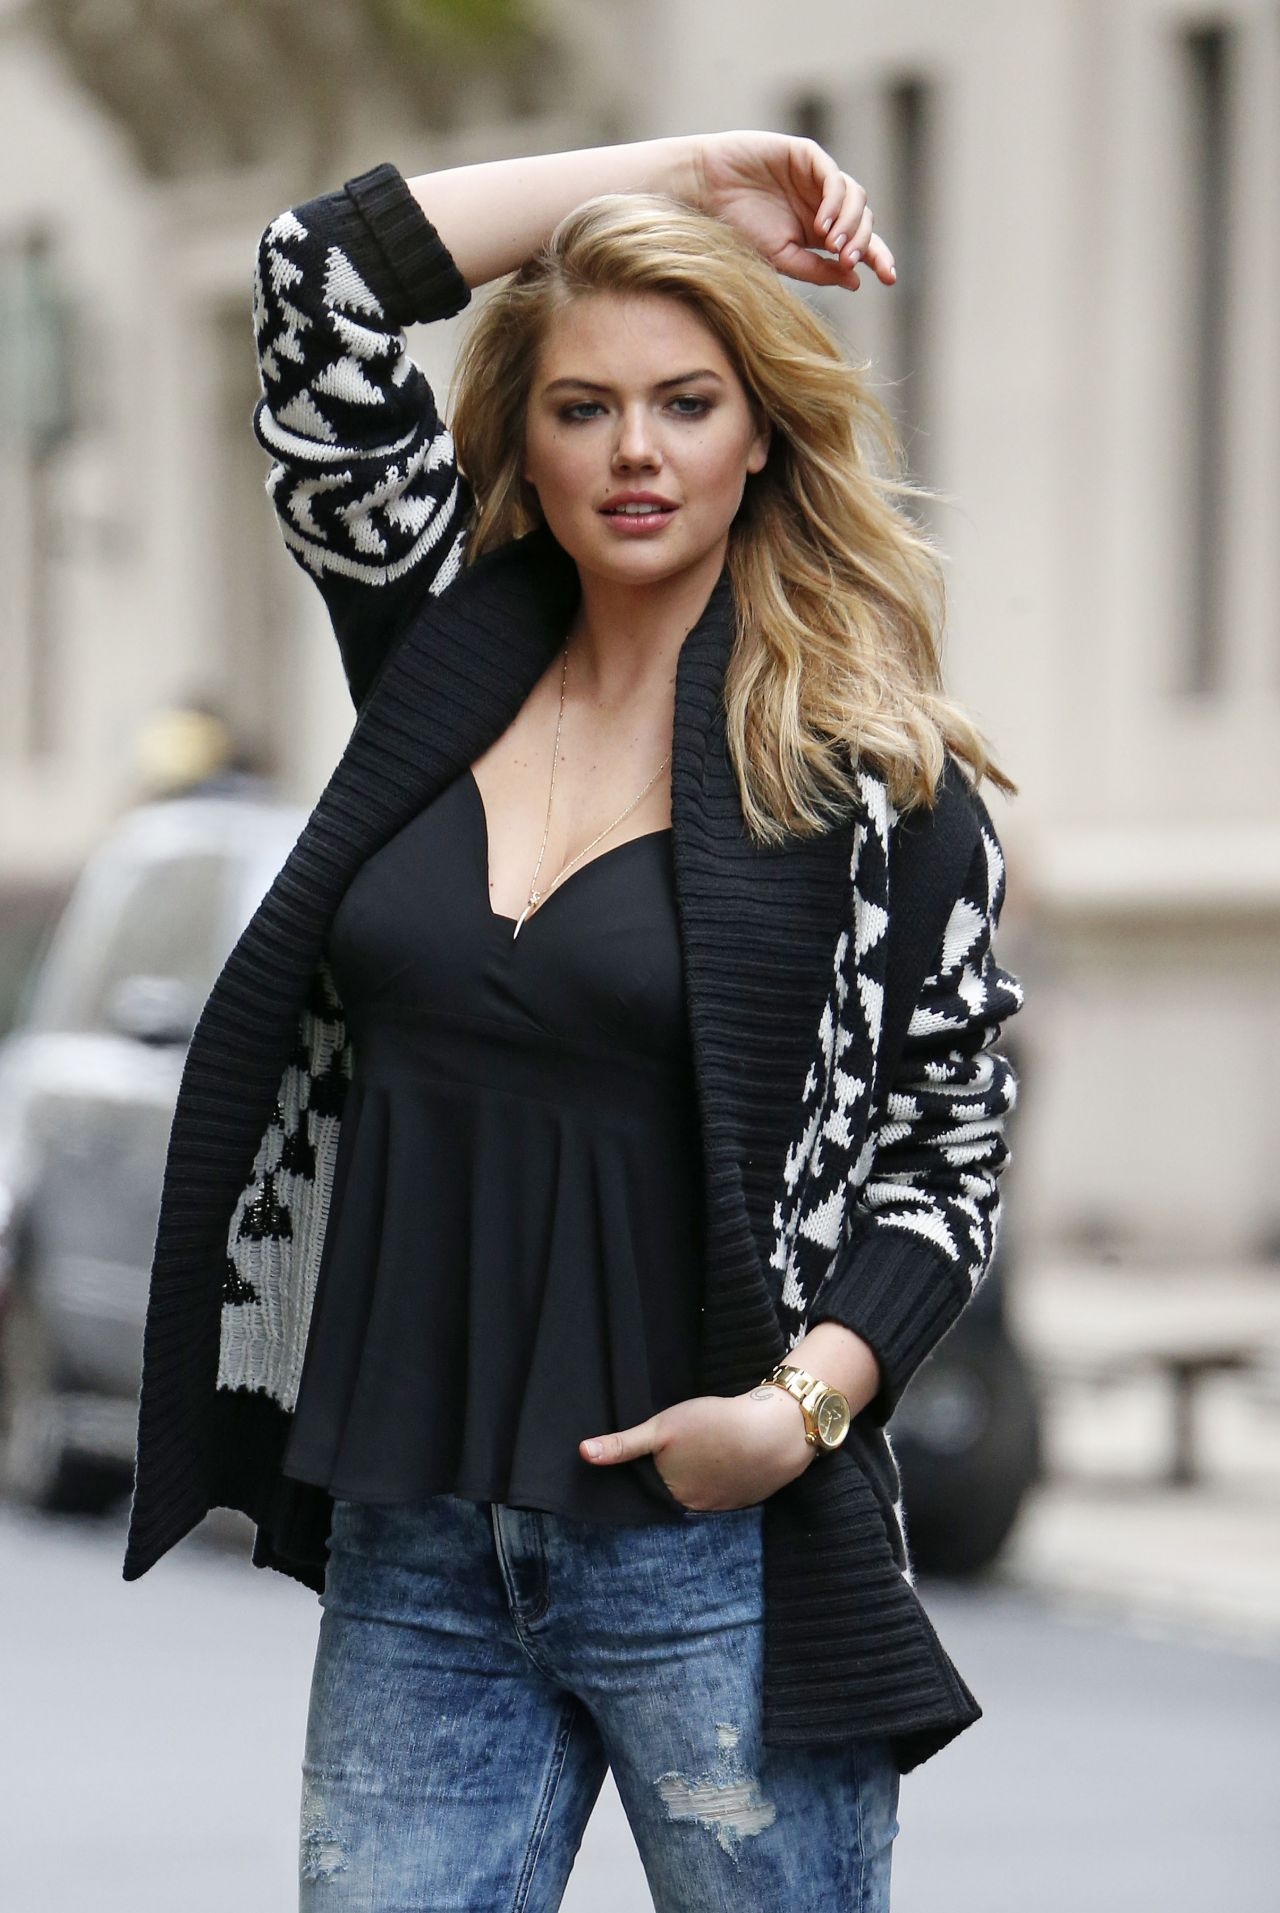 Kate upton swimsuit edition outtakes - 1 4